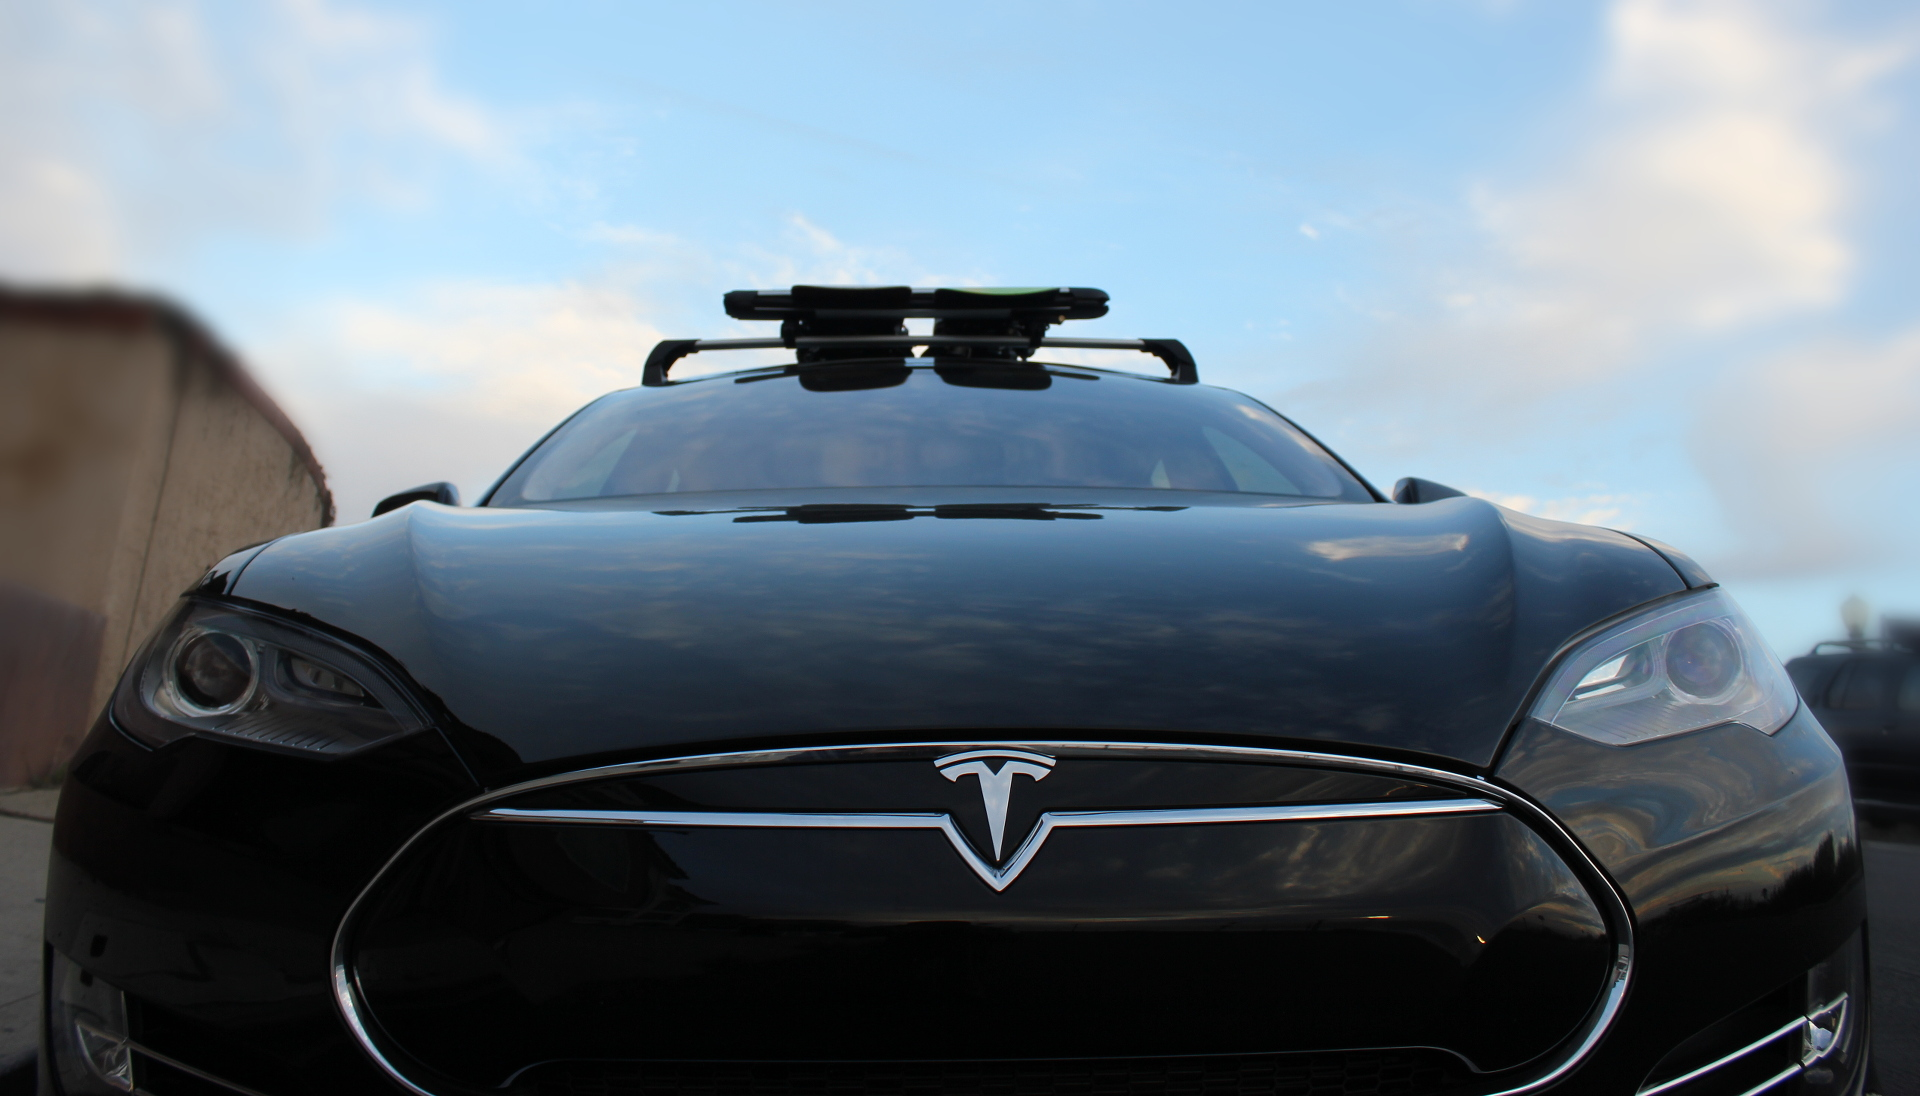 Tesla-Model-S-Whispbar-Roof-Rack-3